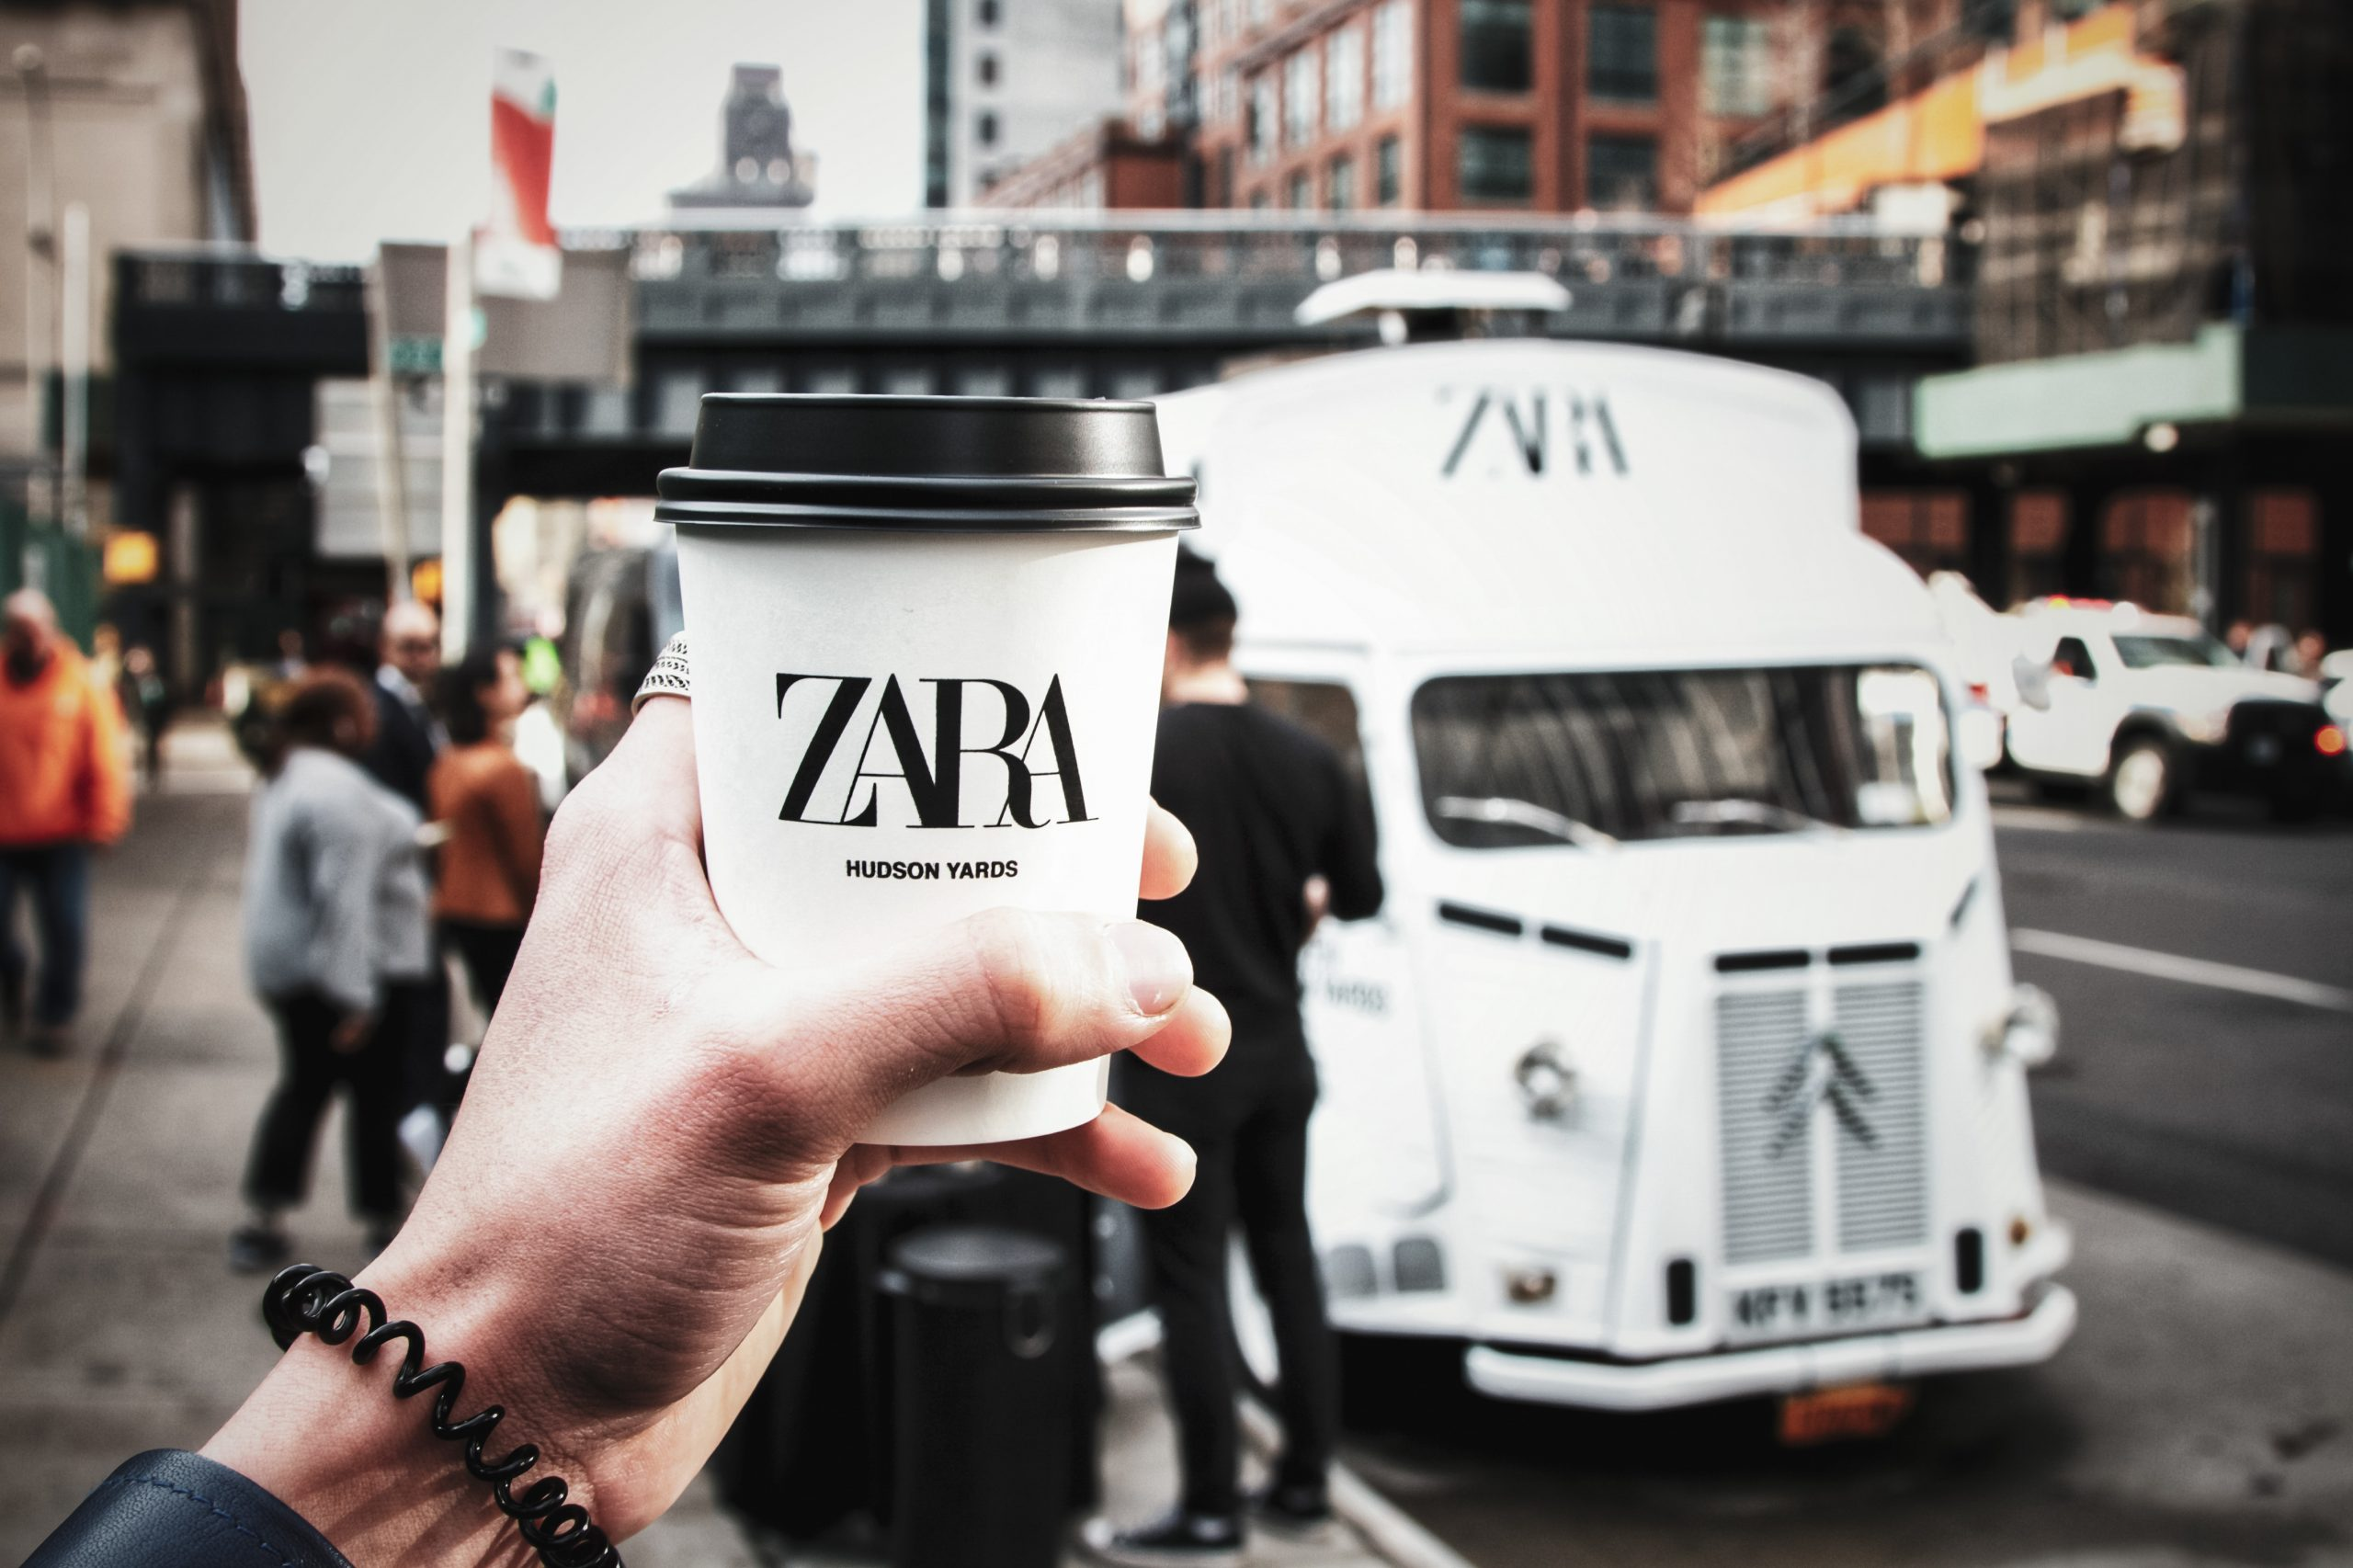 Zara Hudson Yards Coffee Pop-Up